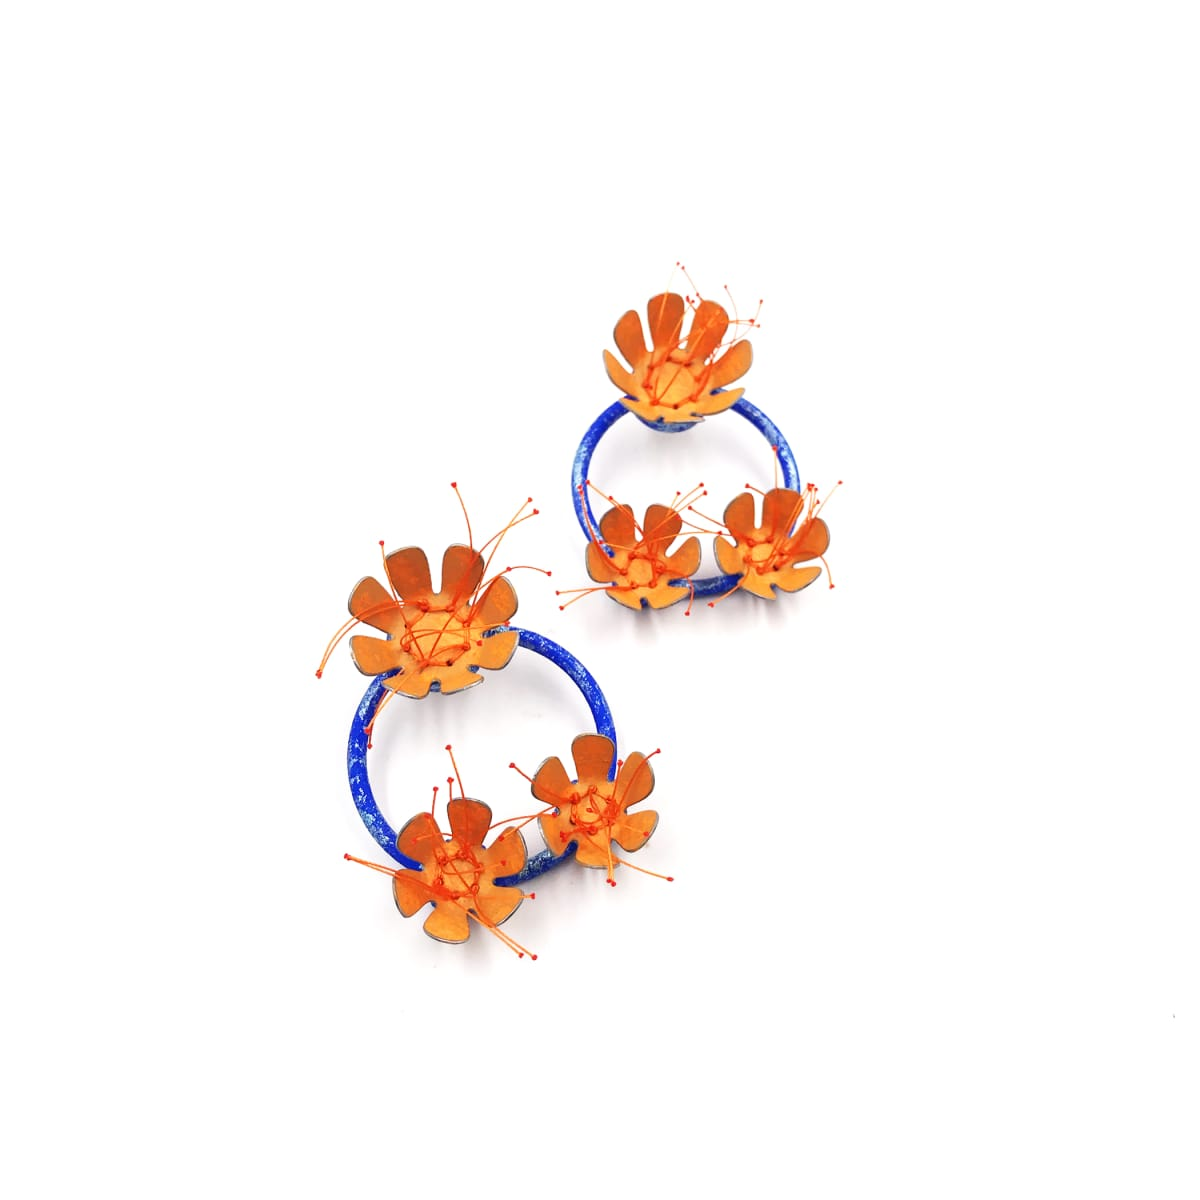 Aric Verrastro, The Bigger the Bloom…(Orange and Blue)